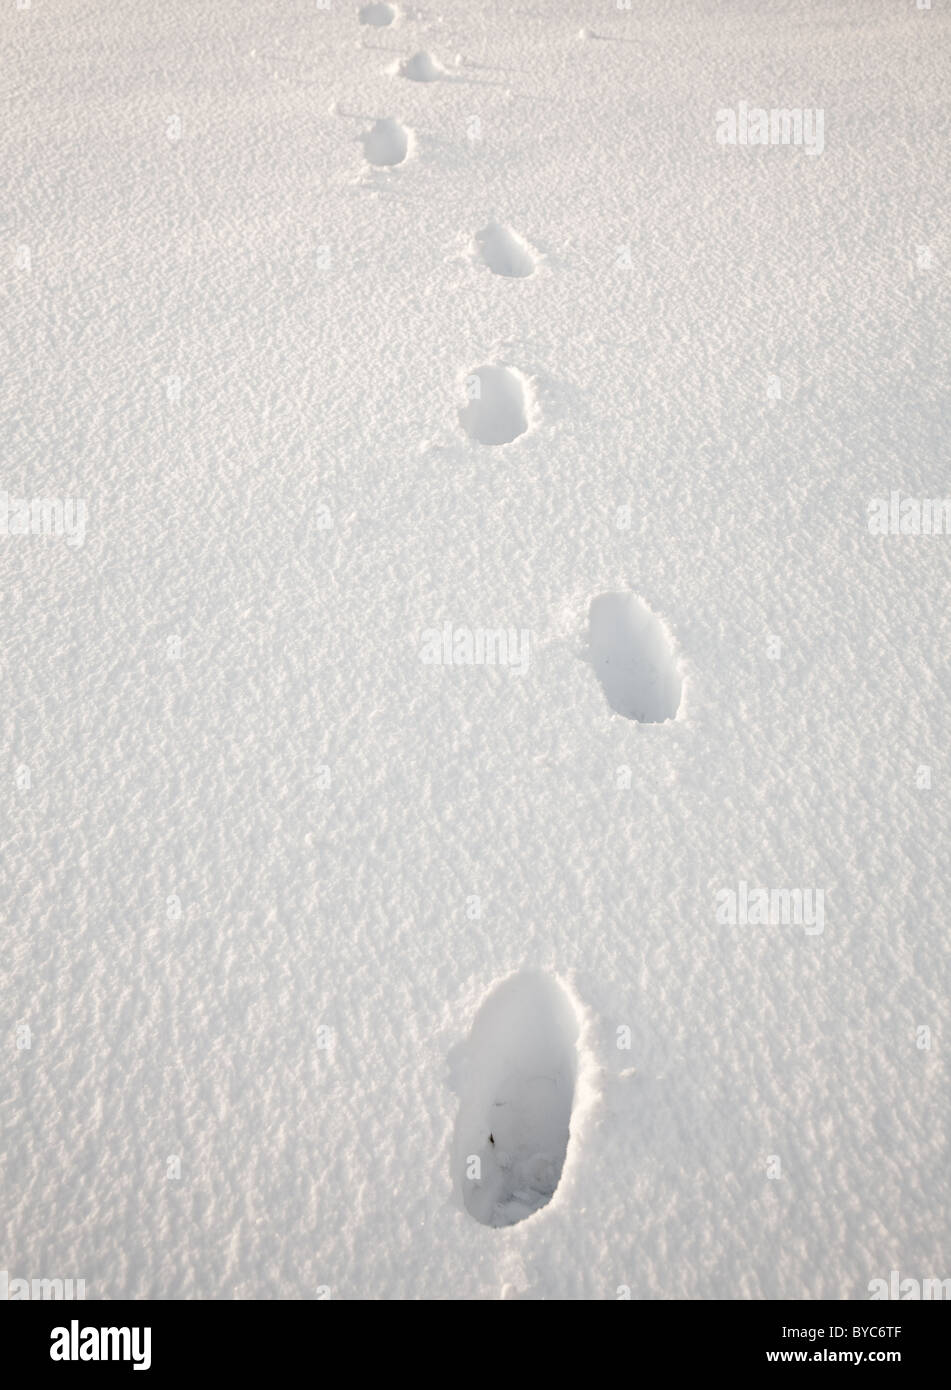 Set of footsteps disappearing into the distance in deep sidelit snow Stock Photo